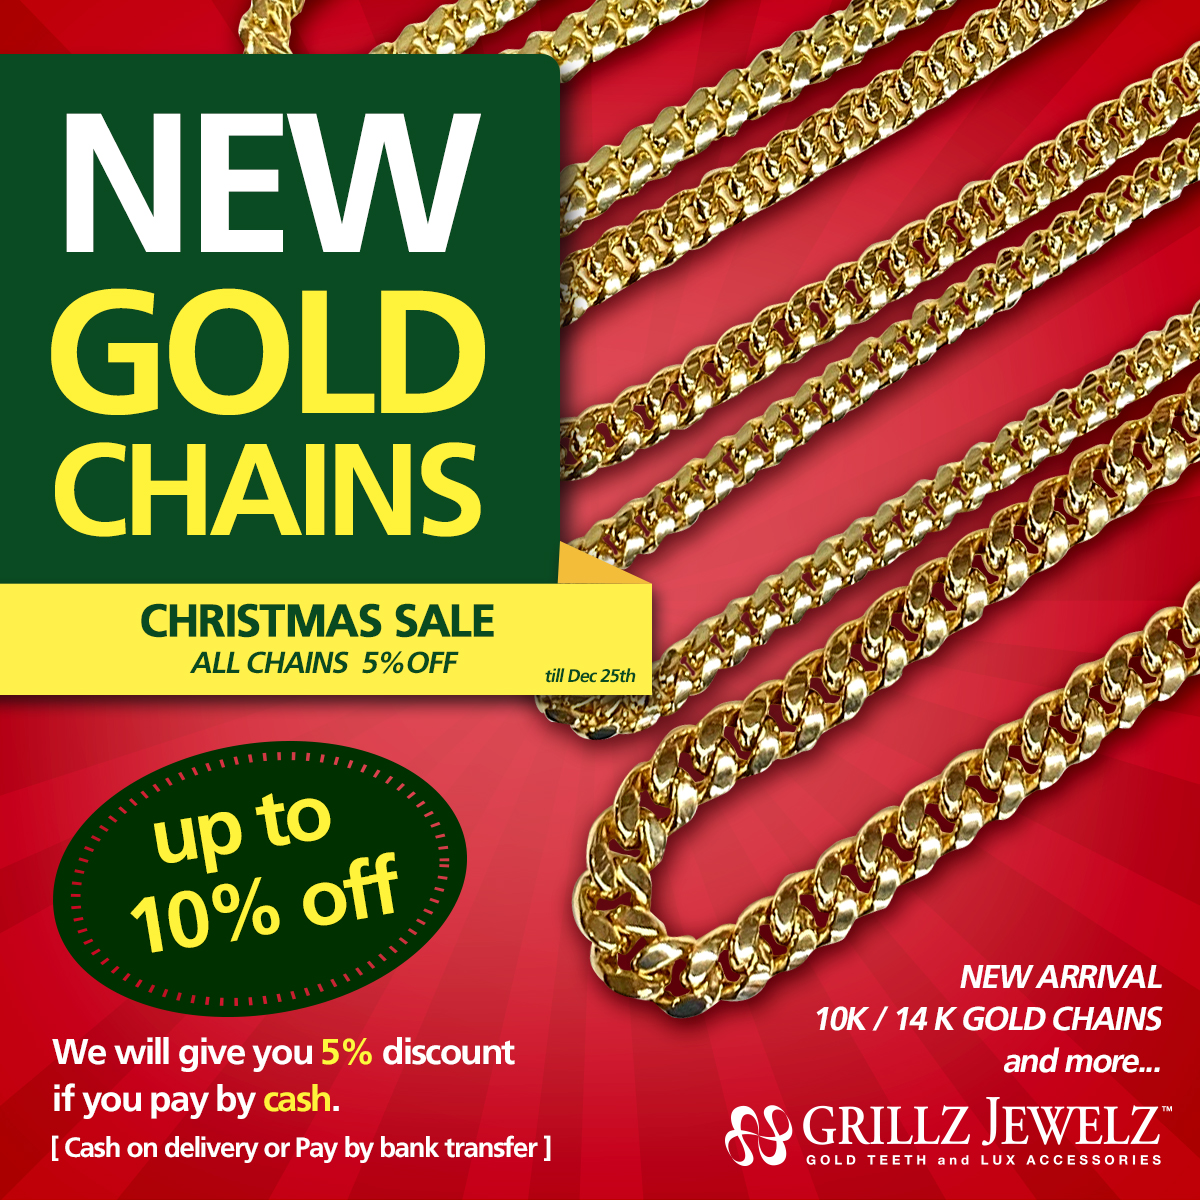 NEW ARRIVAL GOLD CHAINS